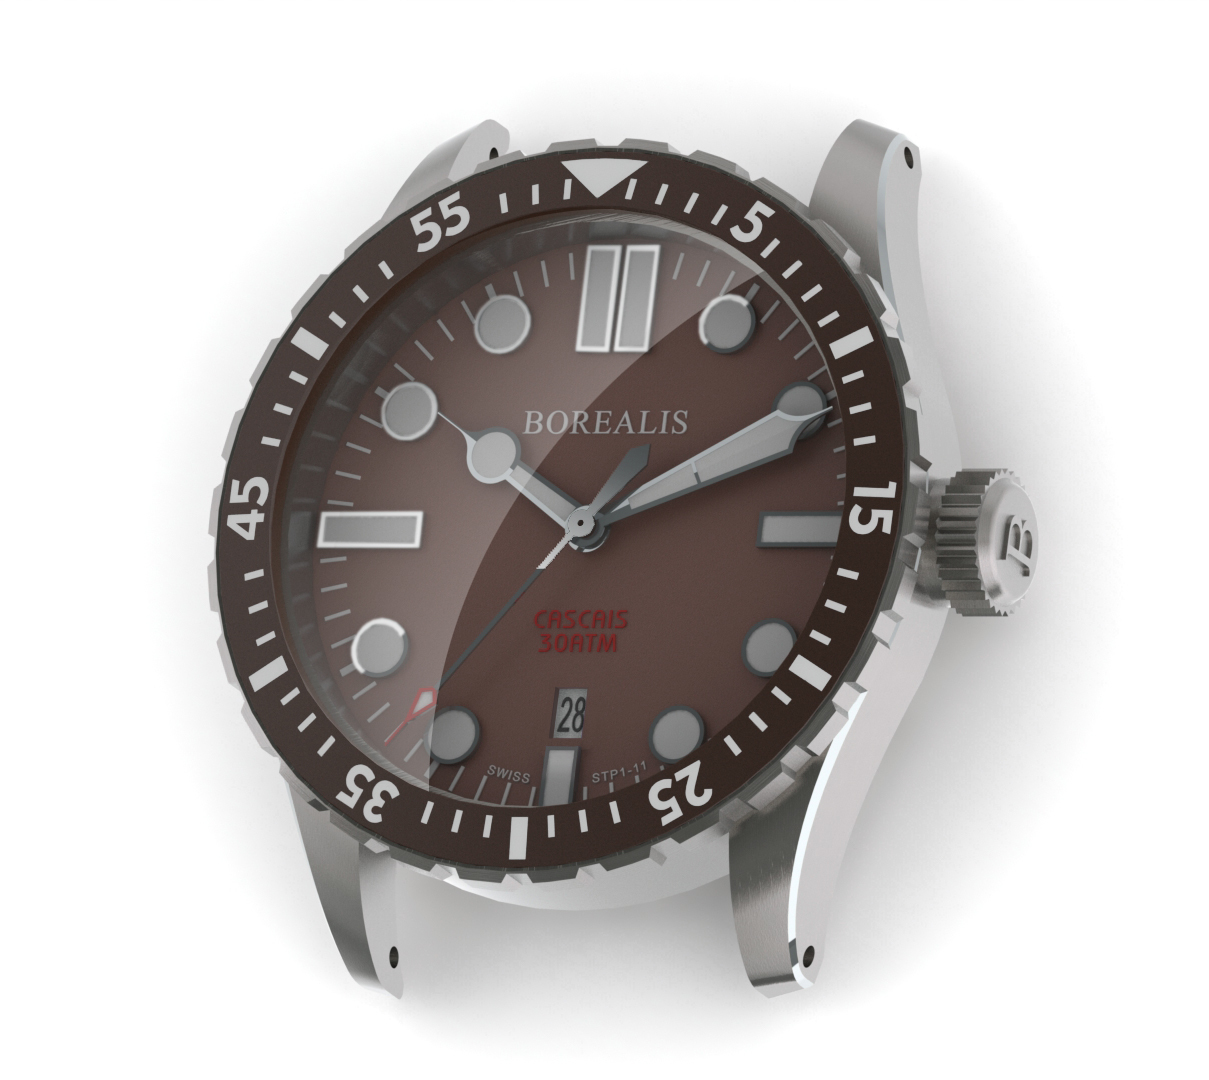 Borealis Cascais Brown Dial Cathedral Hands Date BGW9 Lume BCSCBROWNDCHDATE